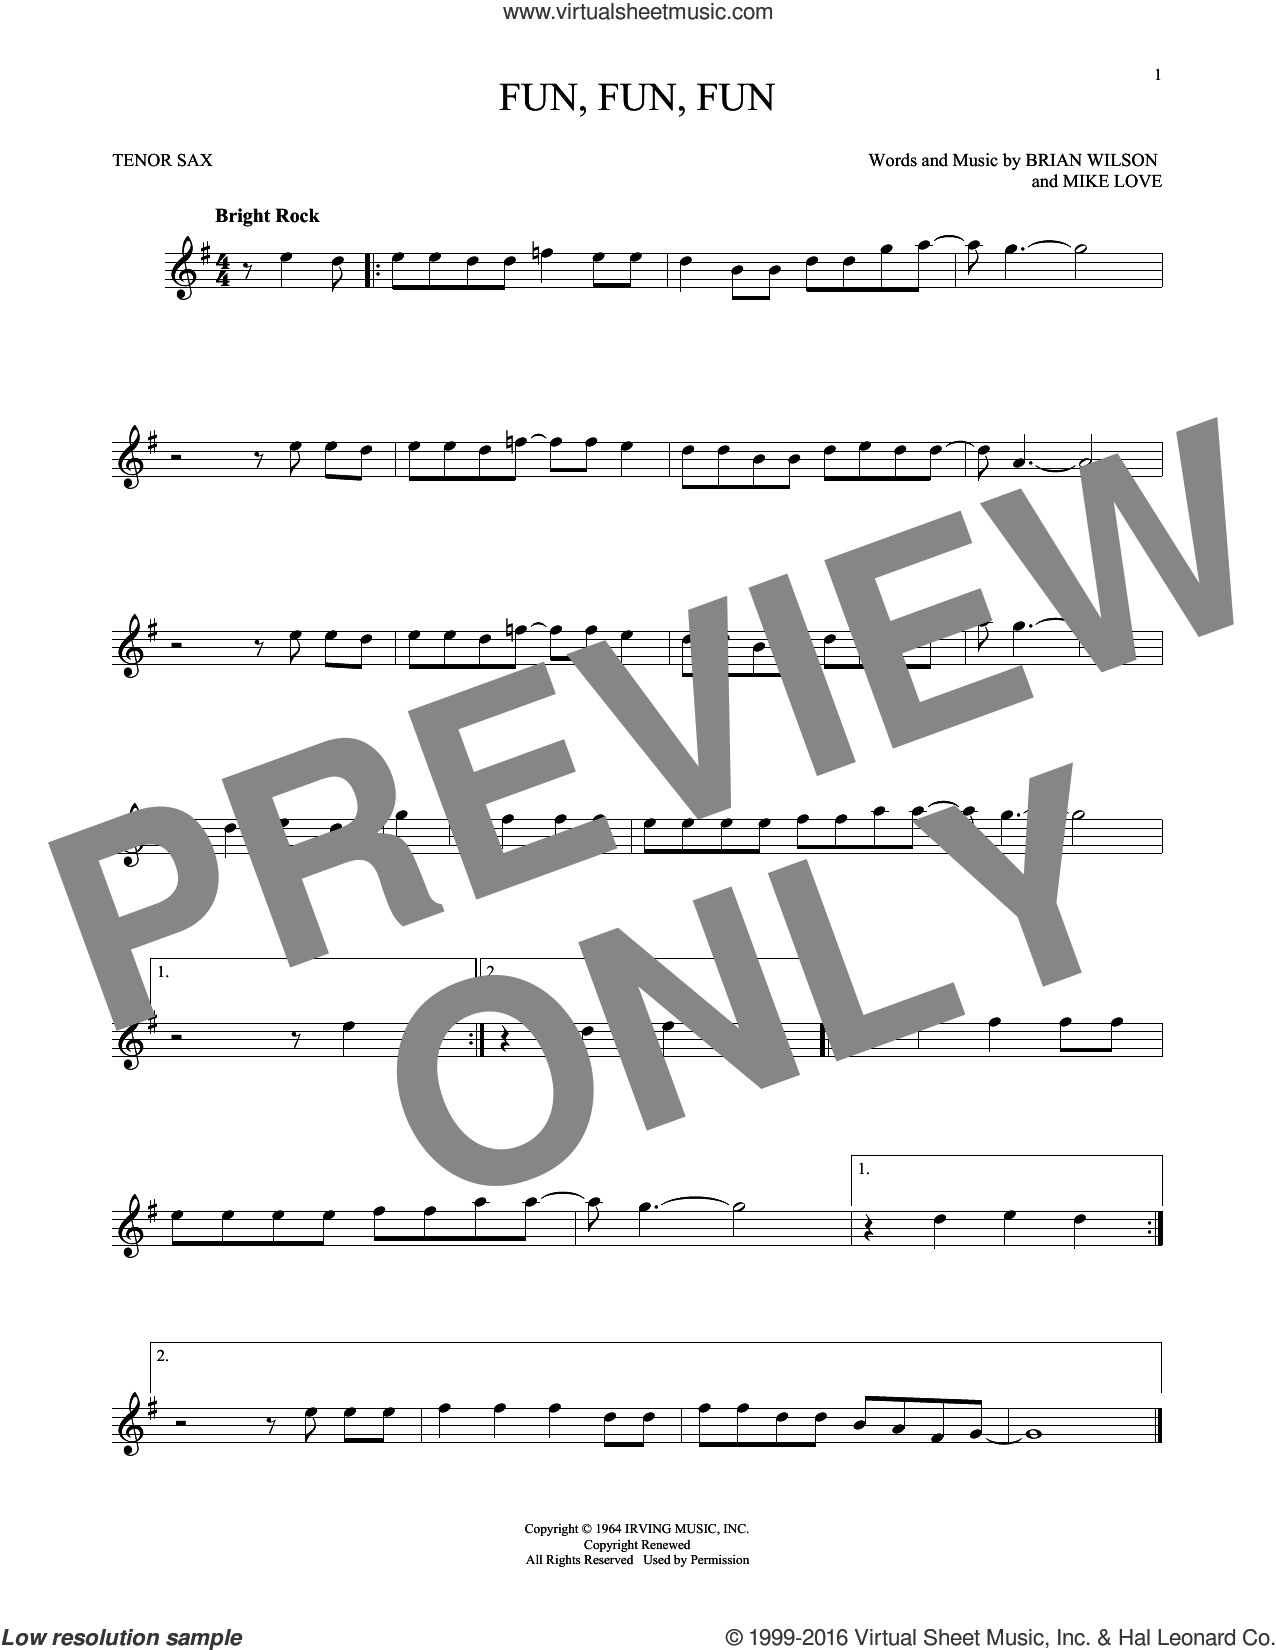 Fun, Fun, Fun sheet music for tenor saxophone solo by The Beach Boys, Brian Wilson and Mike Love, intermediate skill level